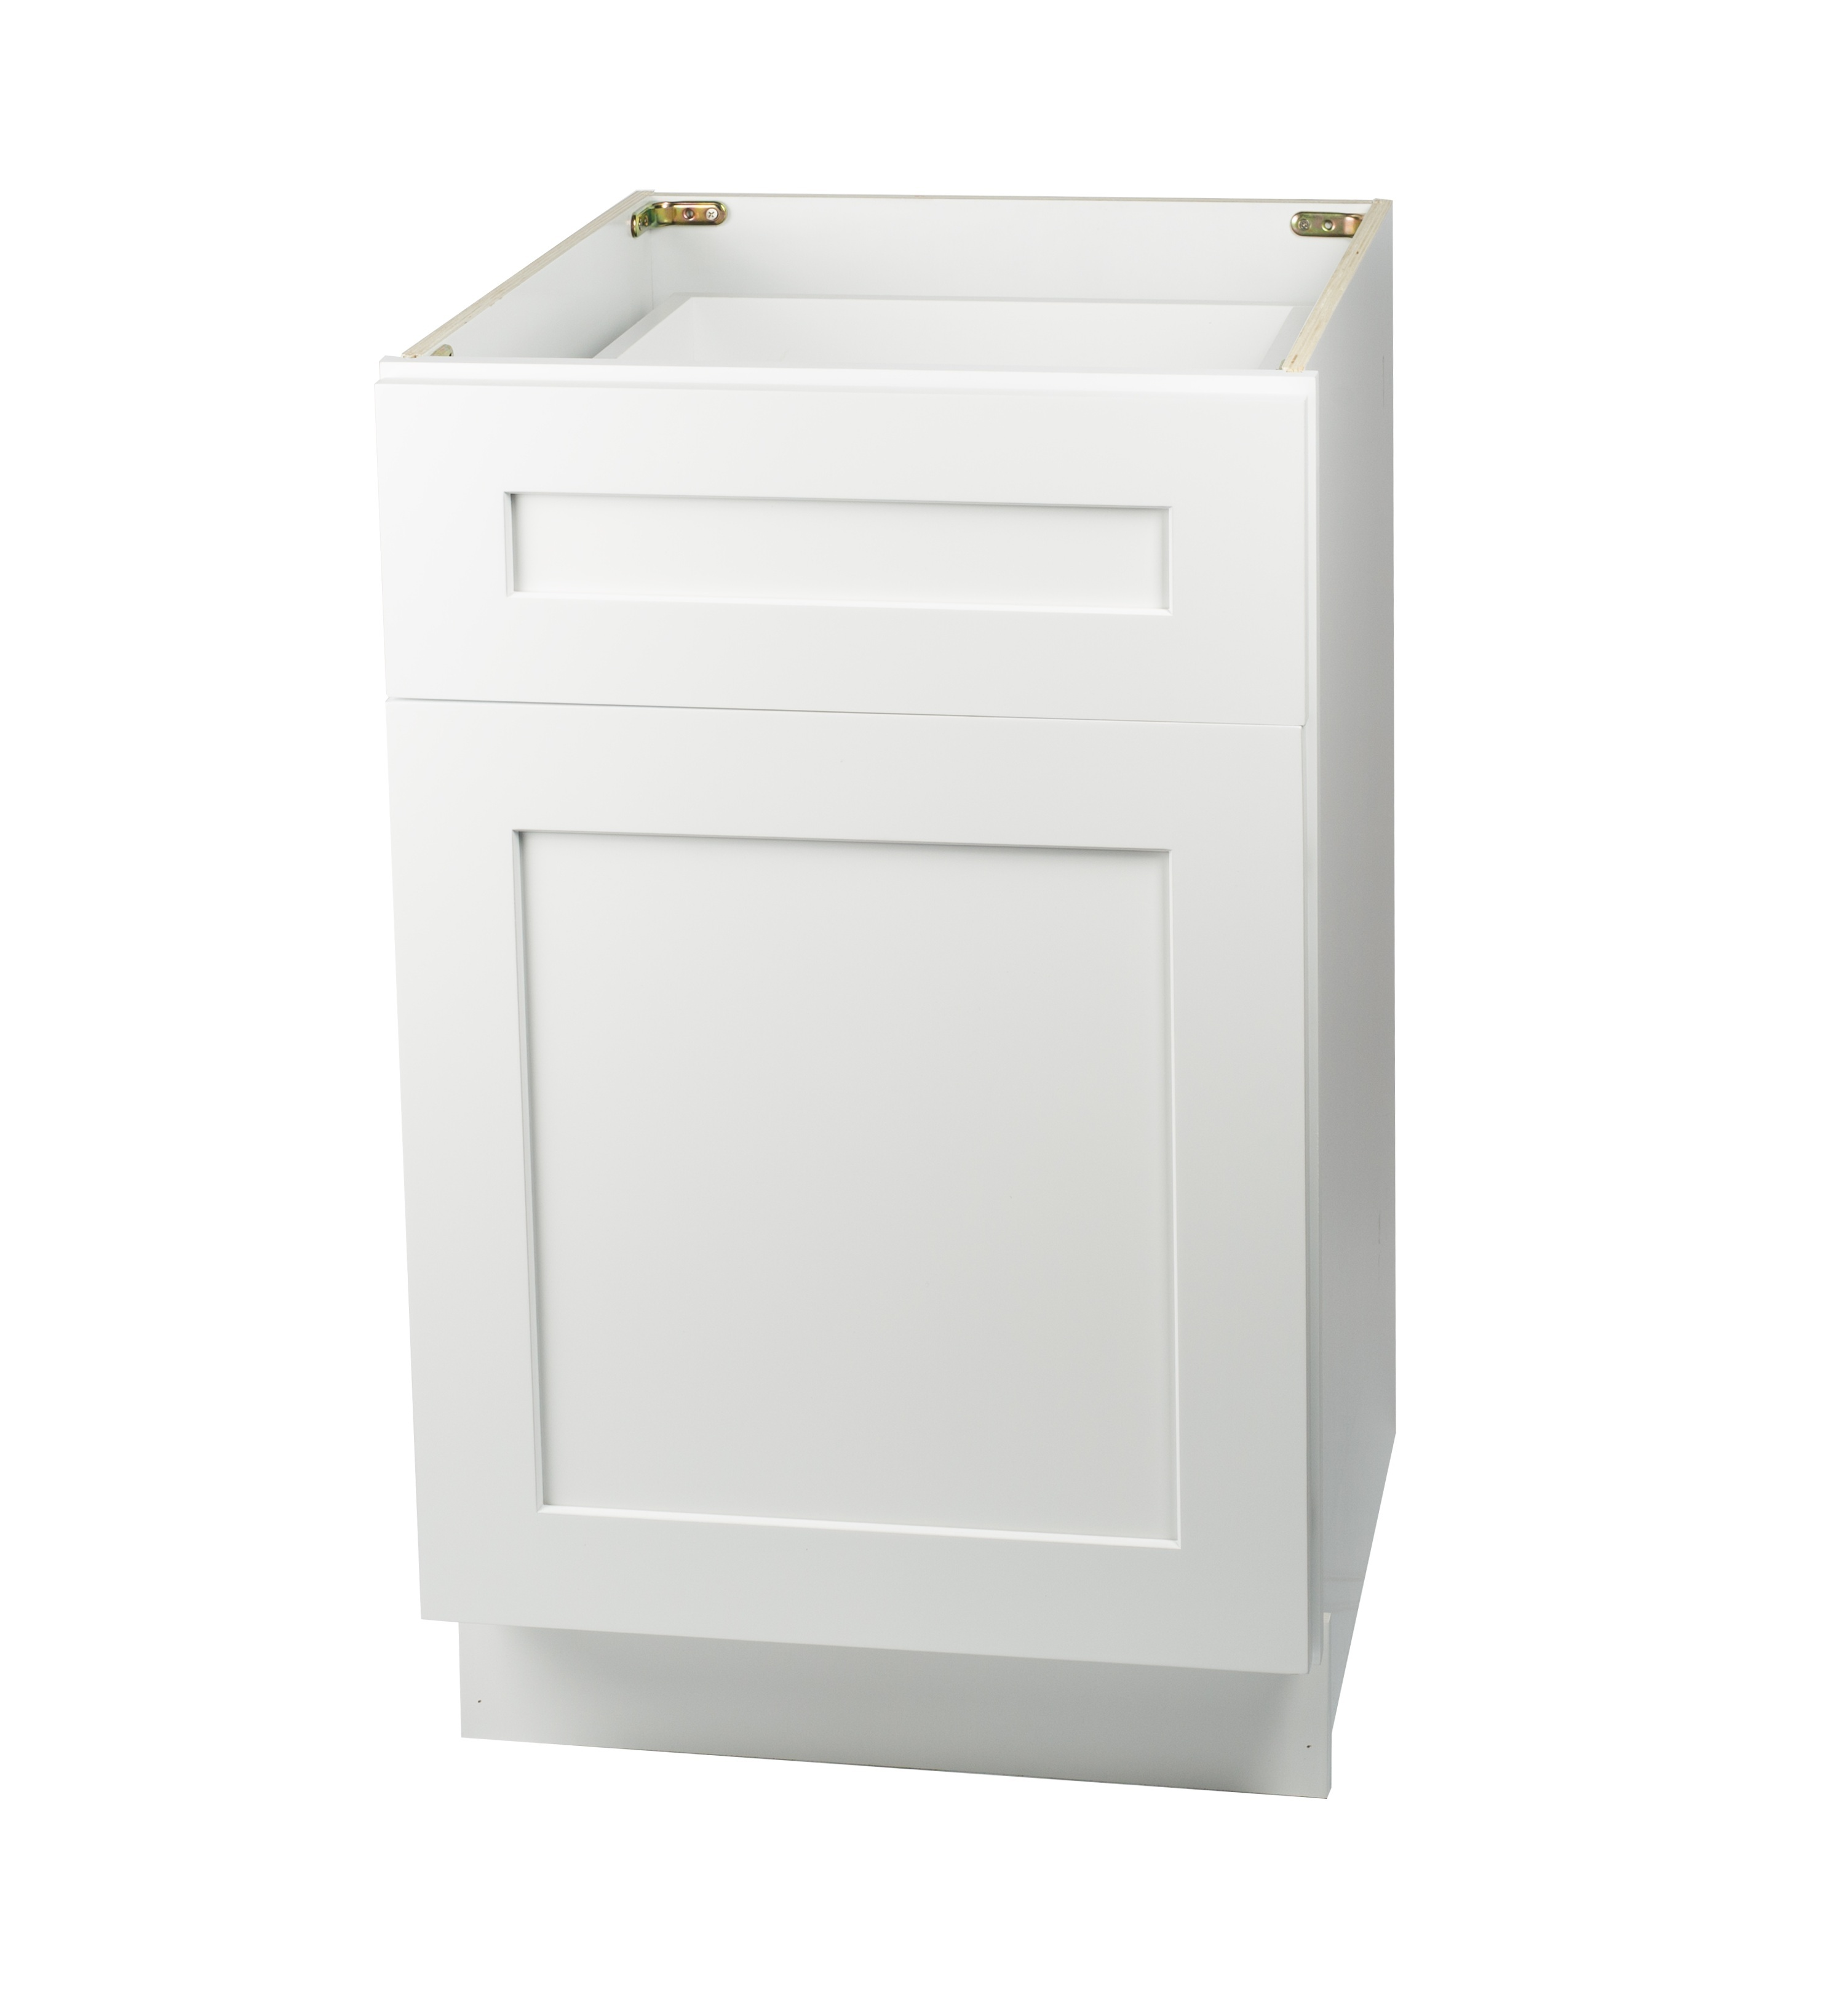 Ready to Assemble 30Wx34.5Hx24D in. Shaker Base Cabinet with 1 Door and 1 Drawer in White